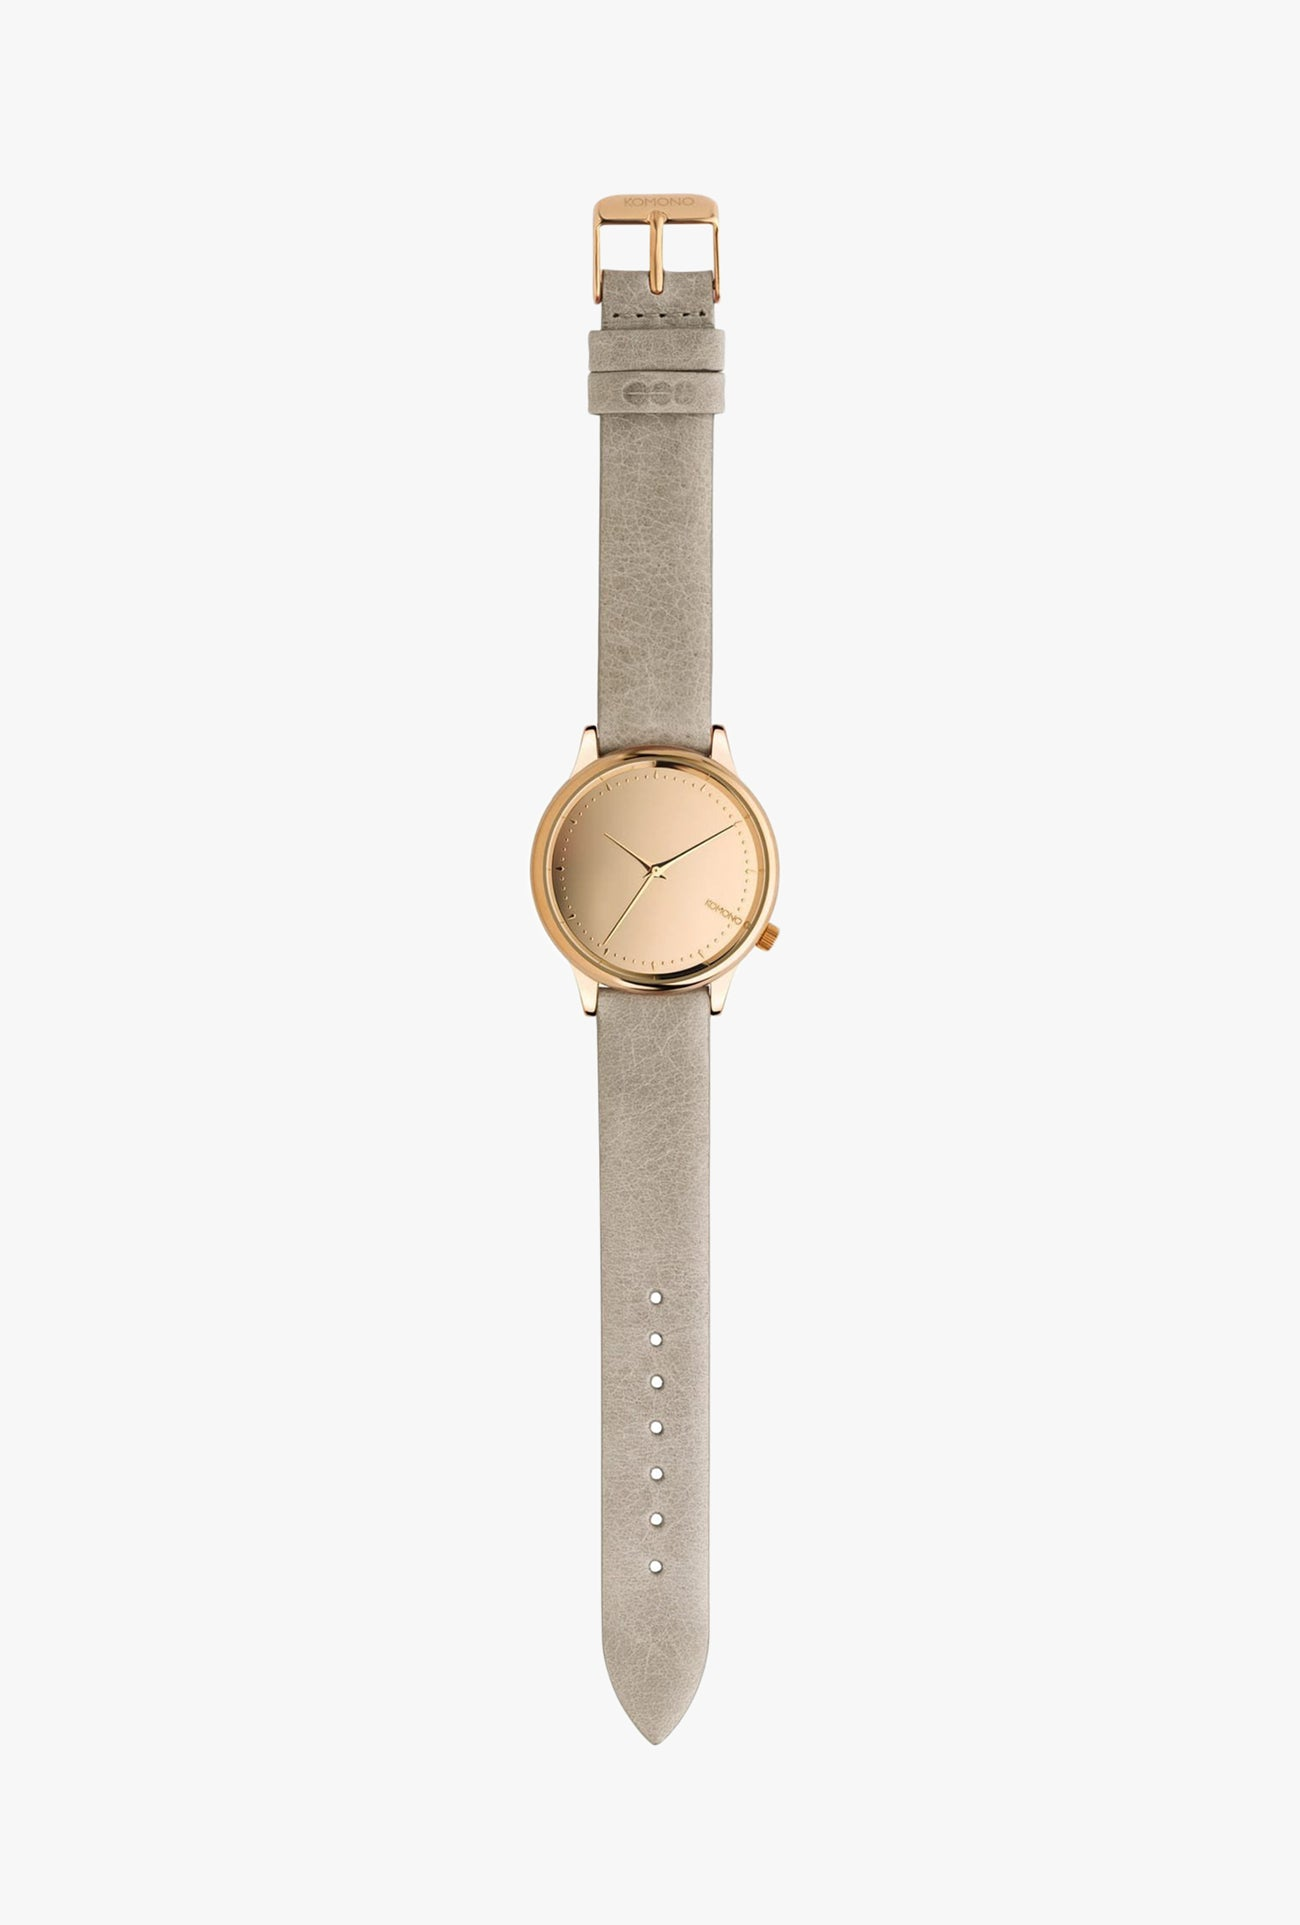 Estelle Mirror Watch - Rose Grey